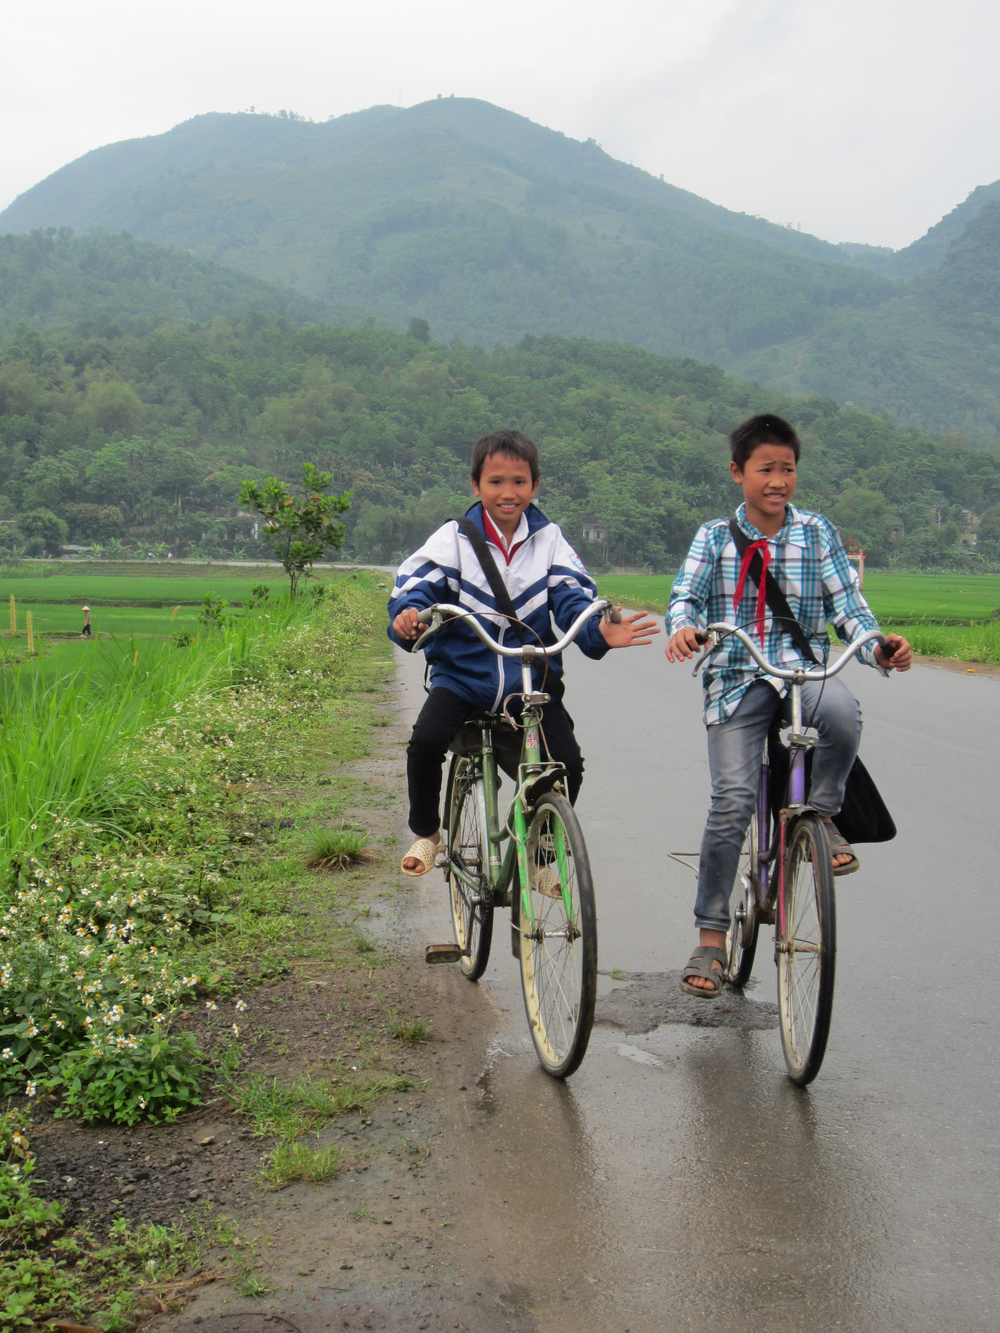 Cycling back from school - Road to Mai Chau, Vietnam